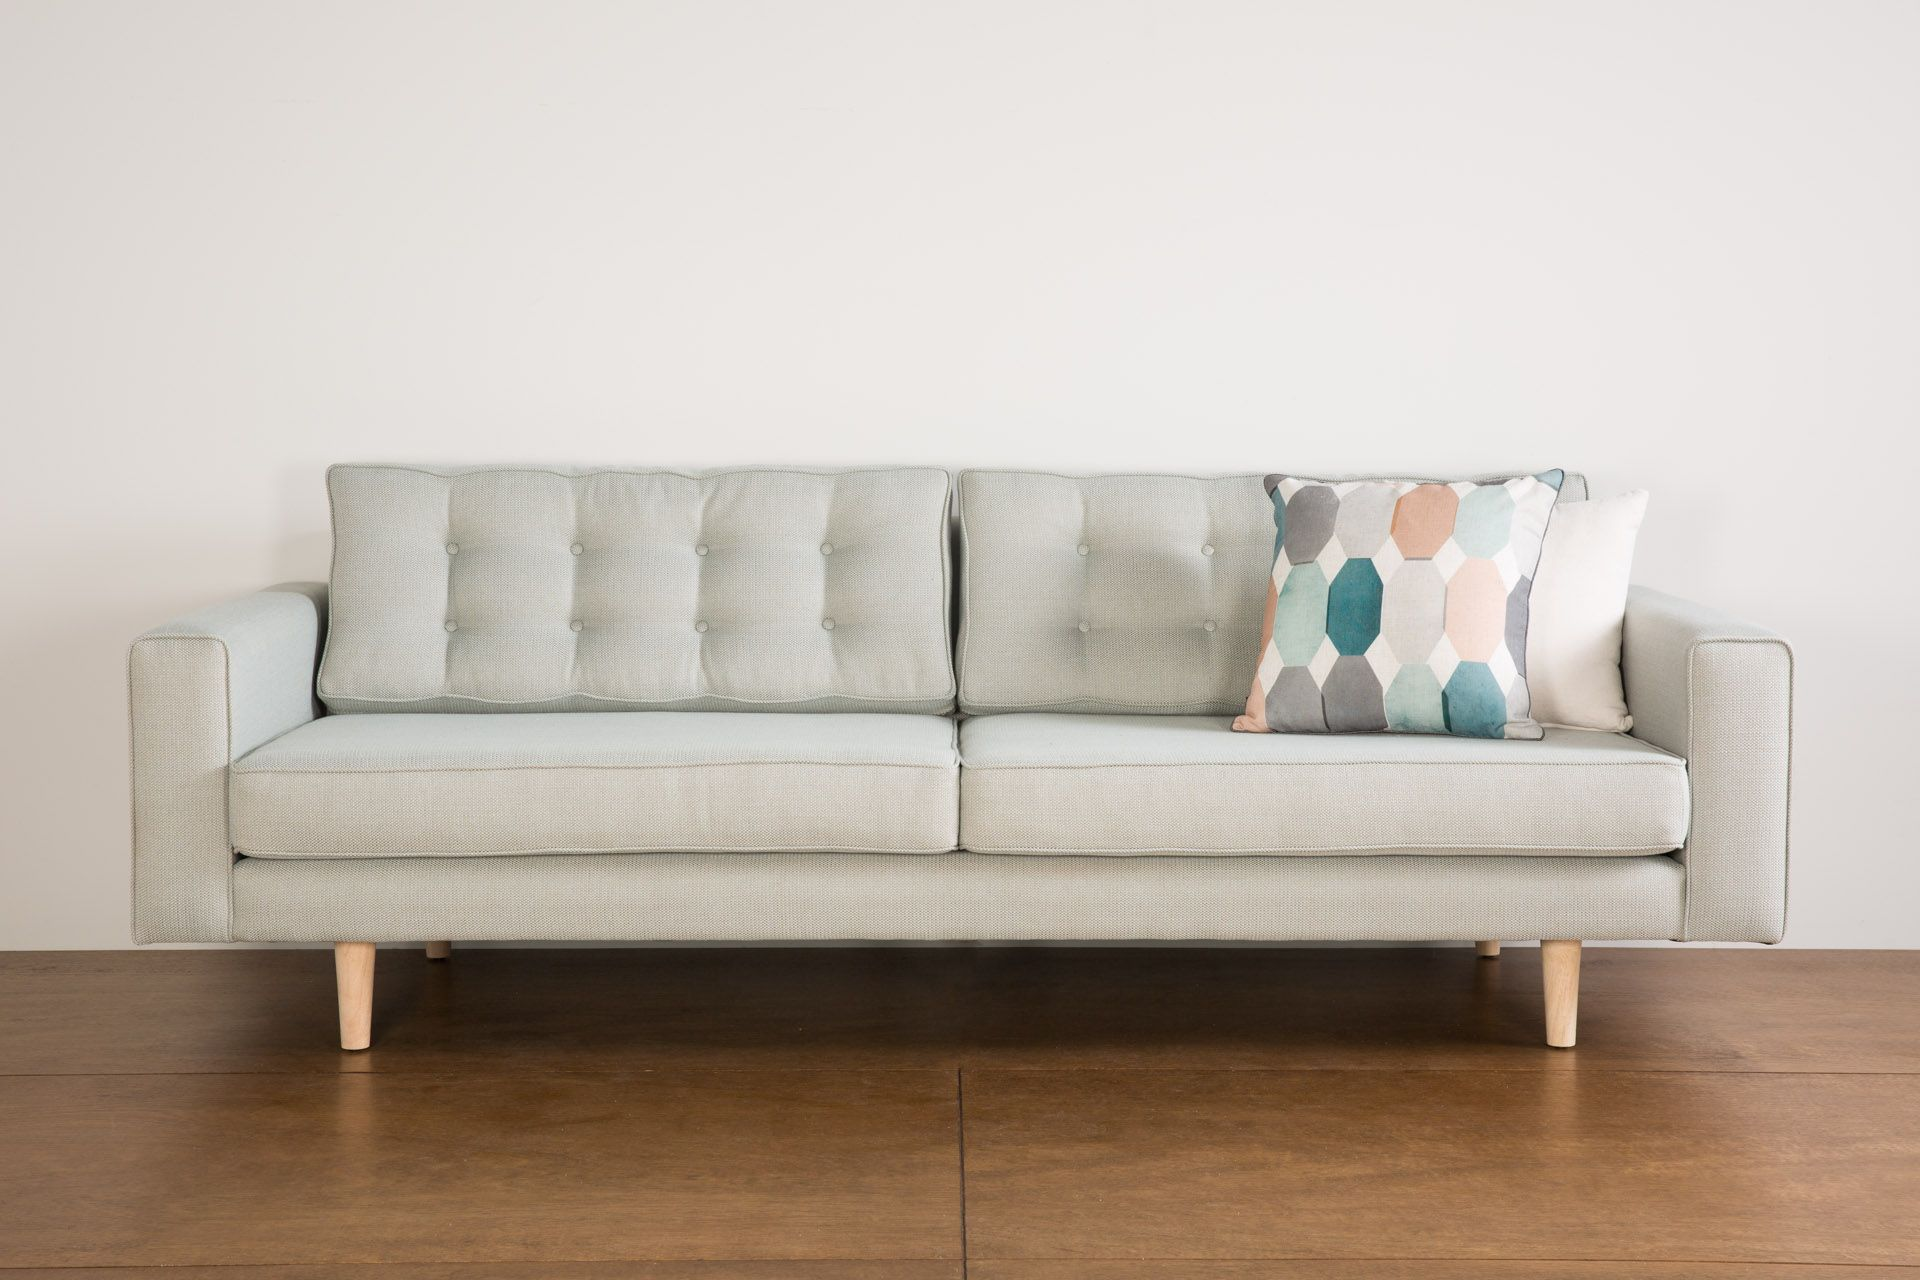 Retro Is back with the Juno sofa All WA Made with a great choice